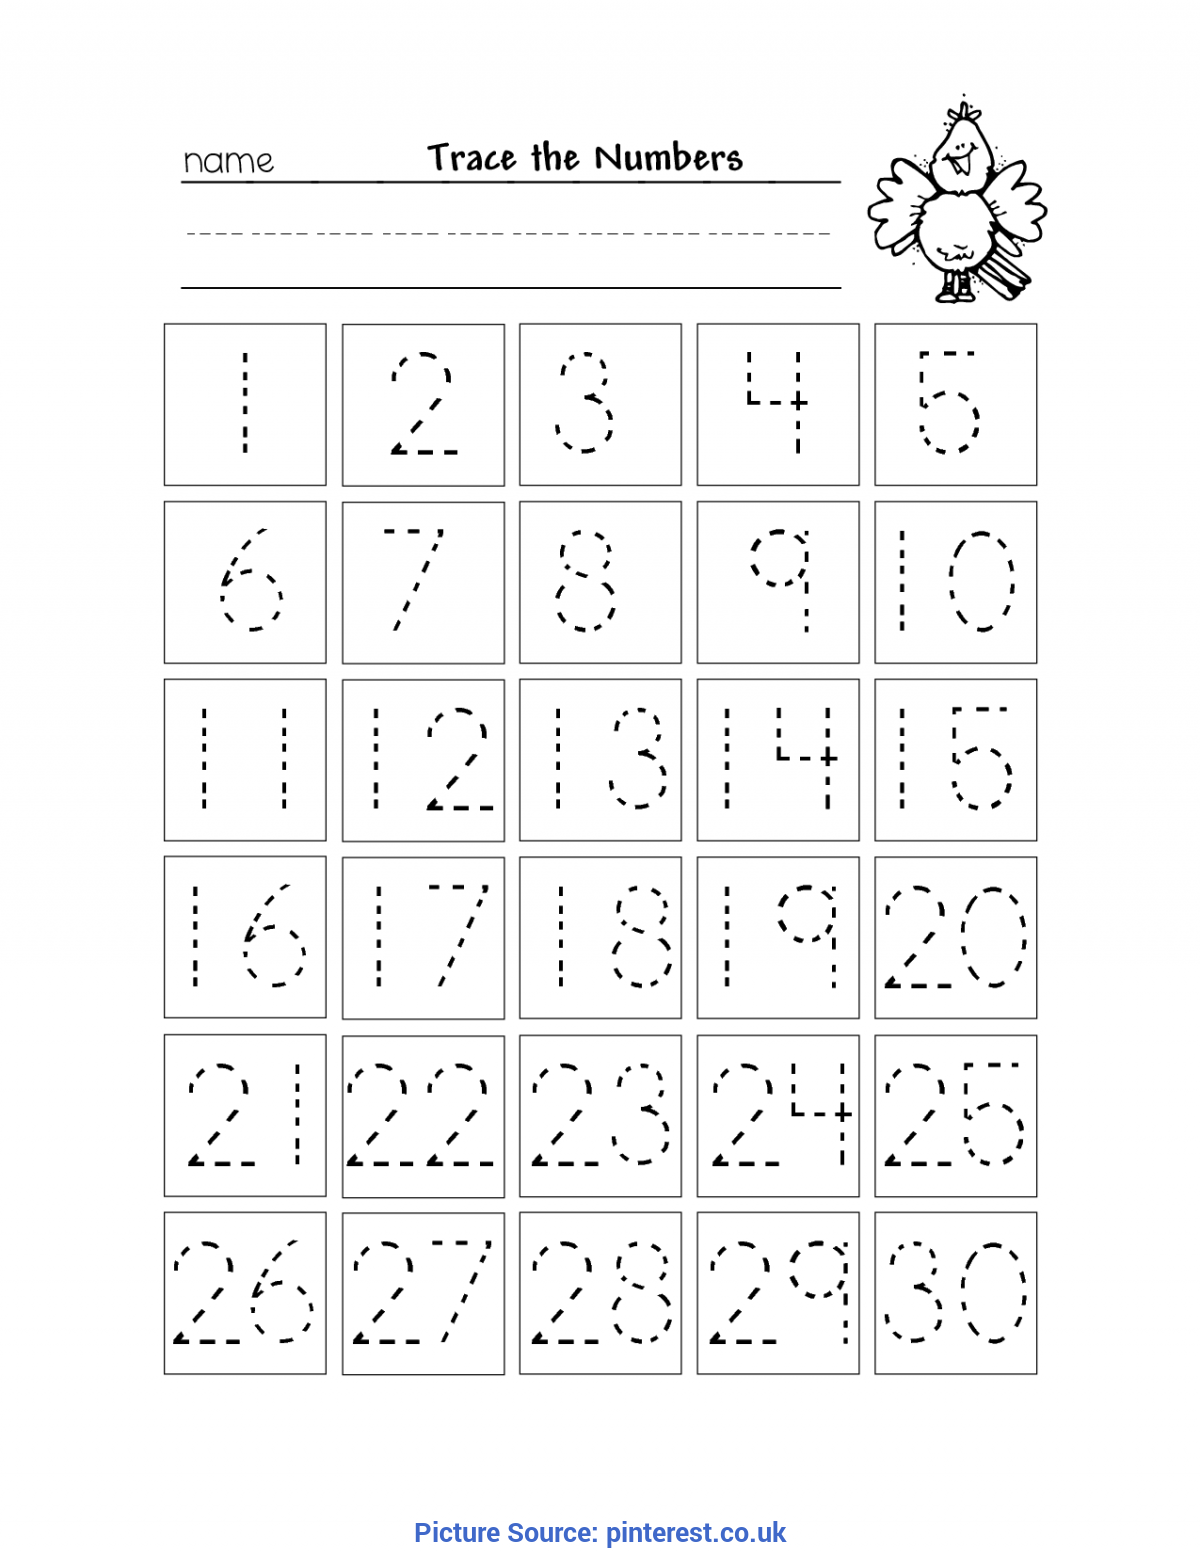 Unusual Preschool Lesson Plans For Numbers 1-10 Trace The Number . Online Personal Background Check Service   T